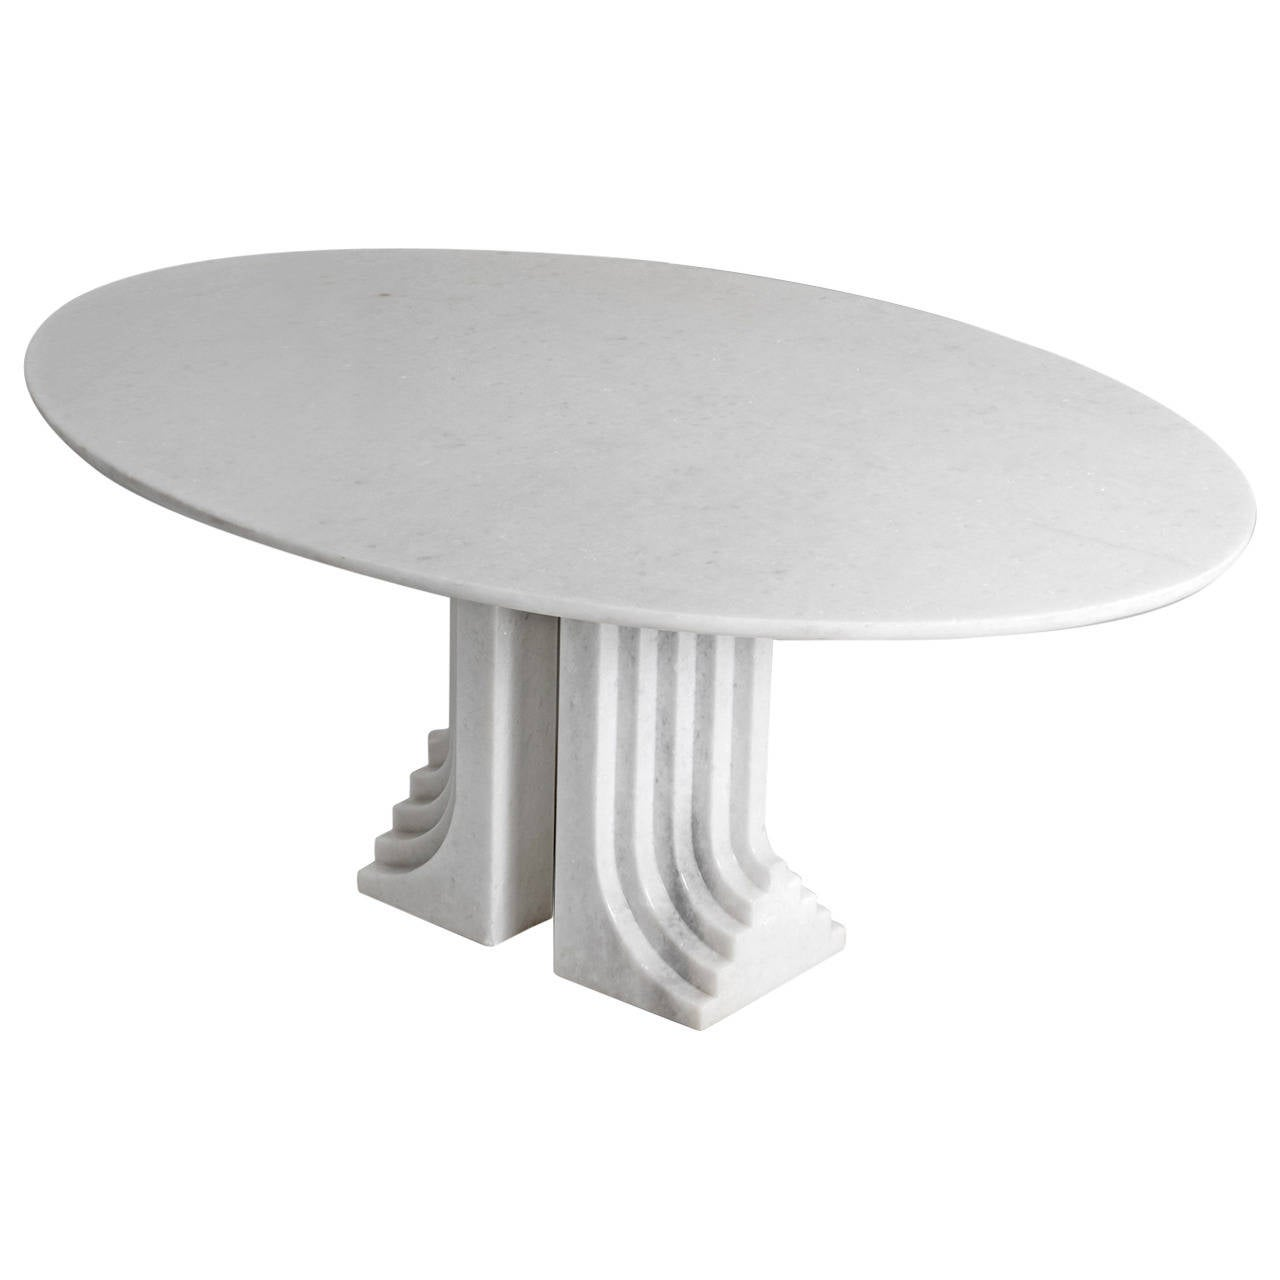 Oval Marble Dining Table 39 Samo 39 By Carlo Scarpa At 1stdibs